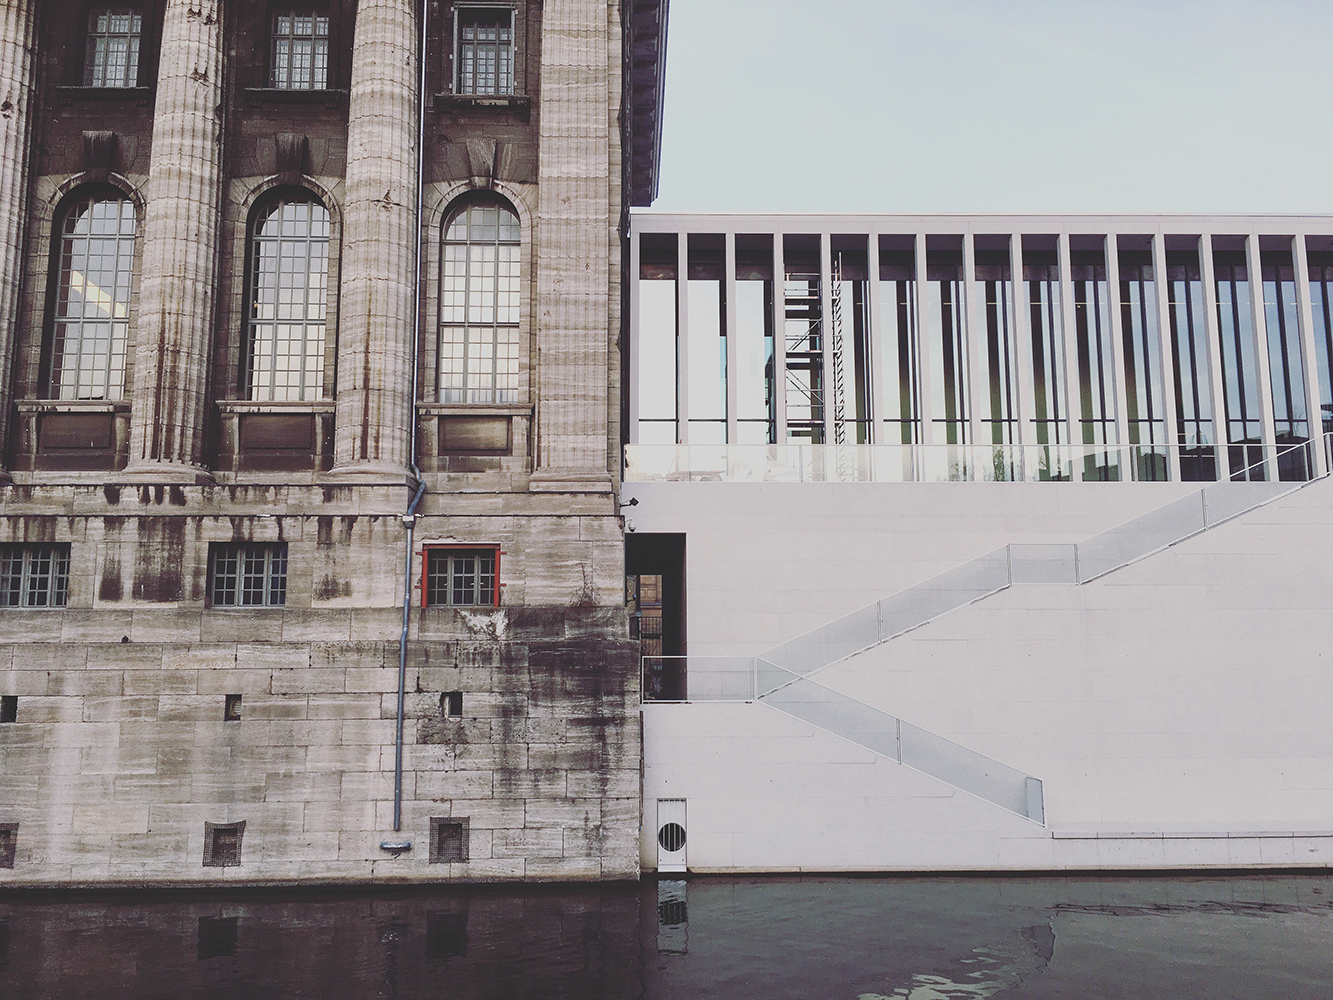 James-Simon-Galerie – David Chipperfield Architects